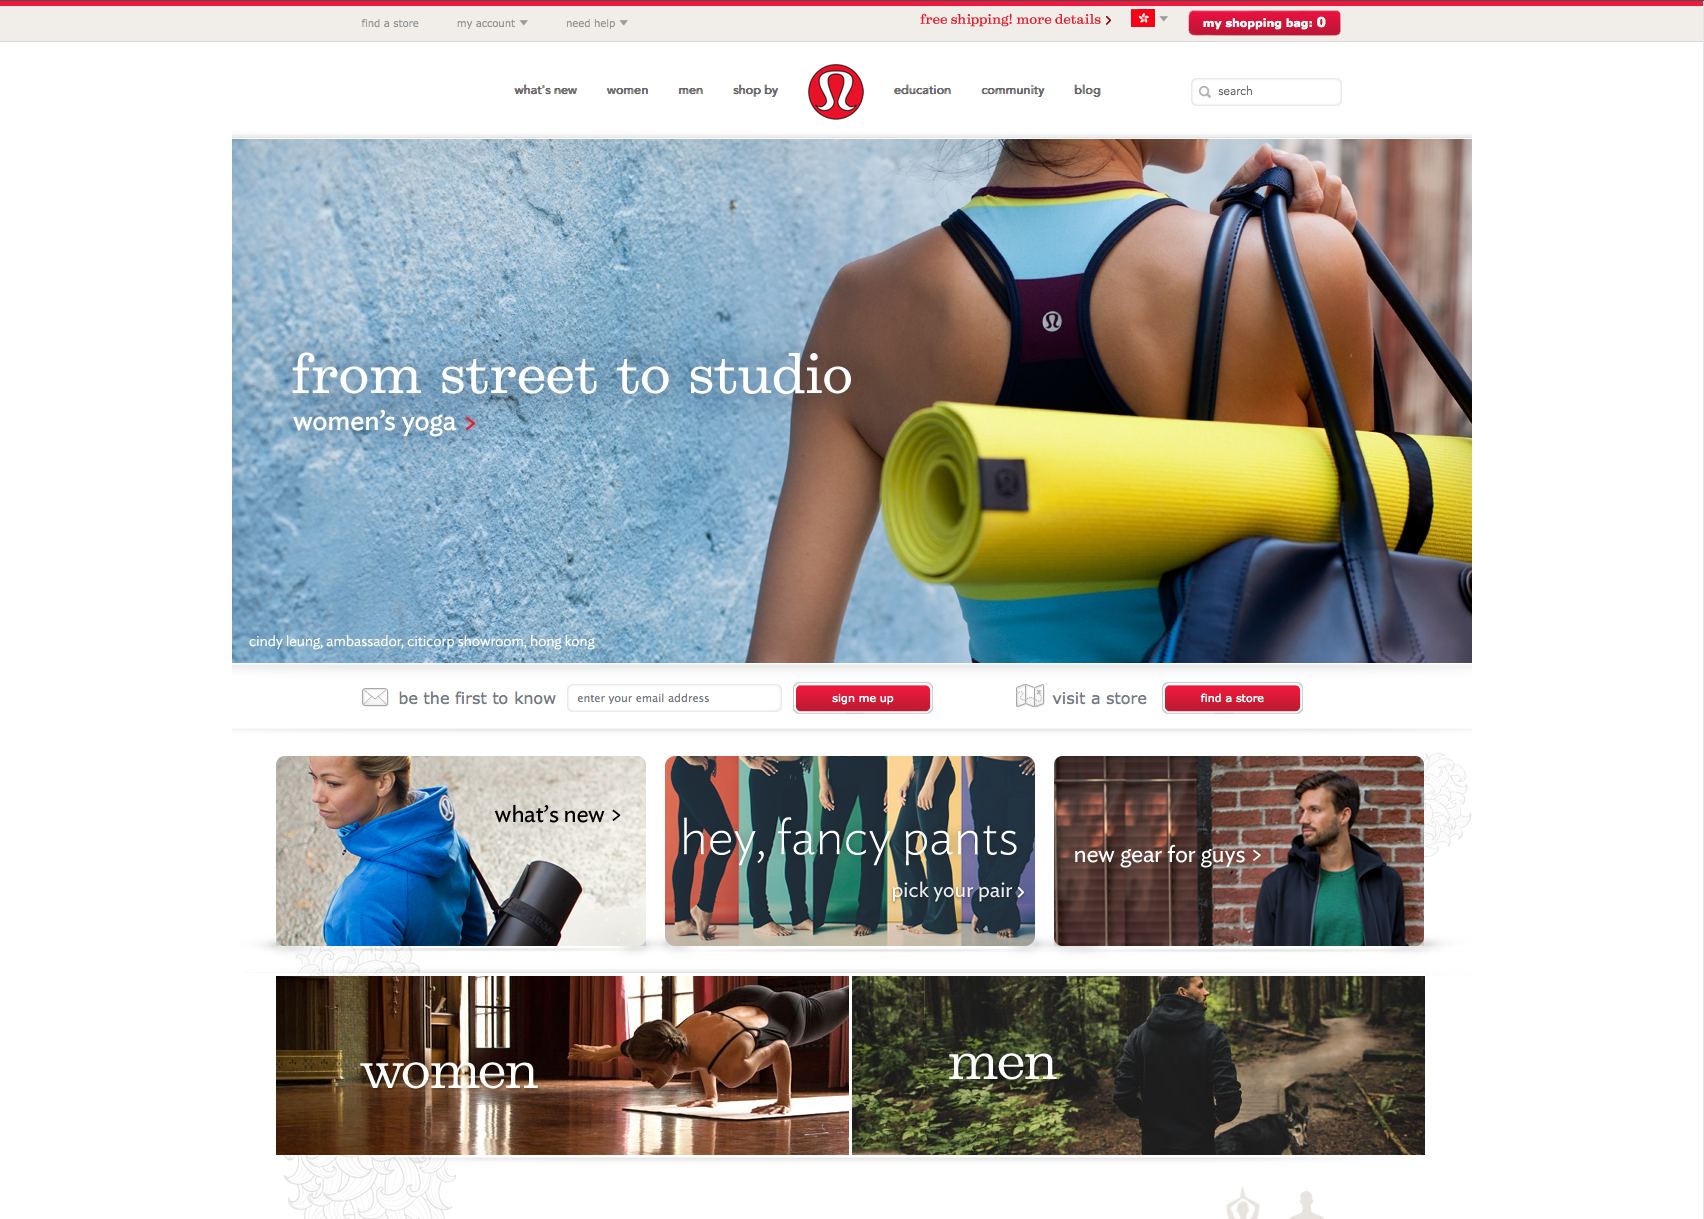 lululemon_cover_18oct2013.png